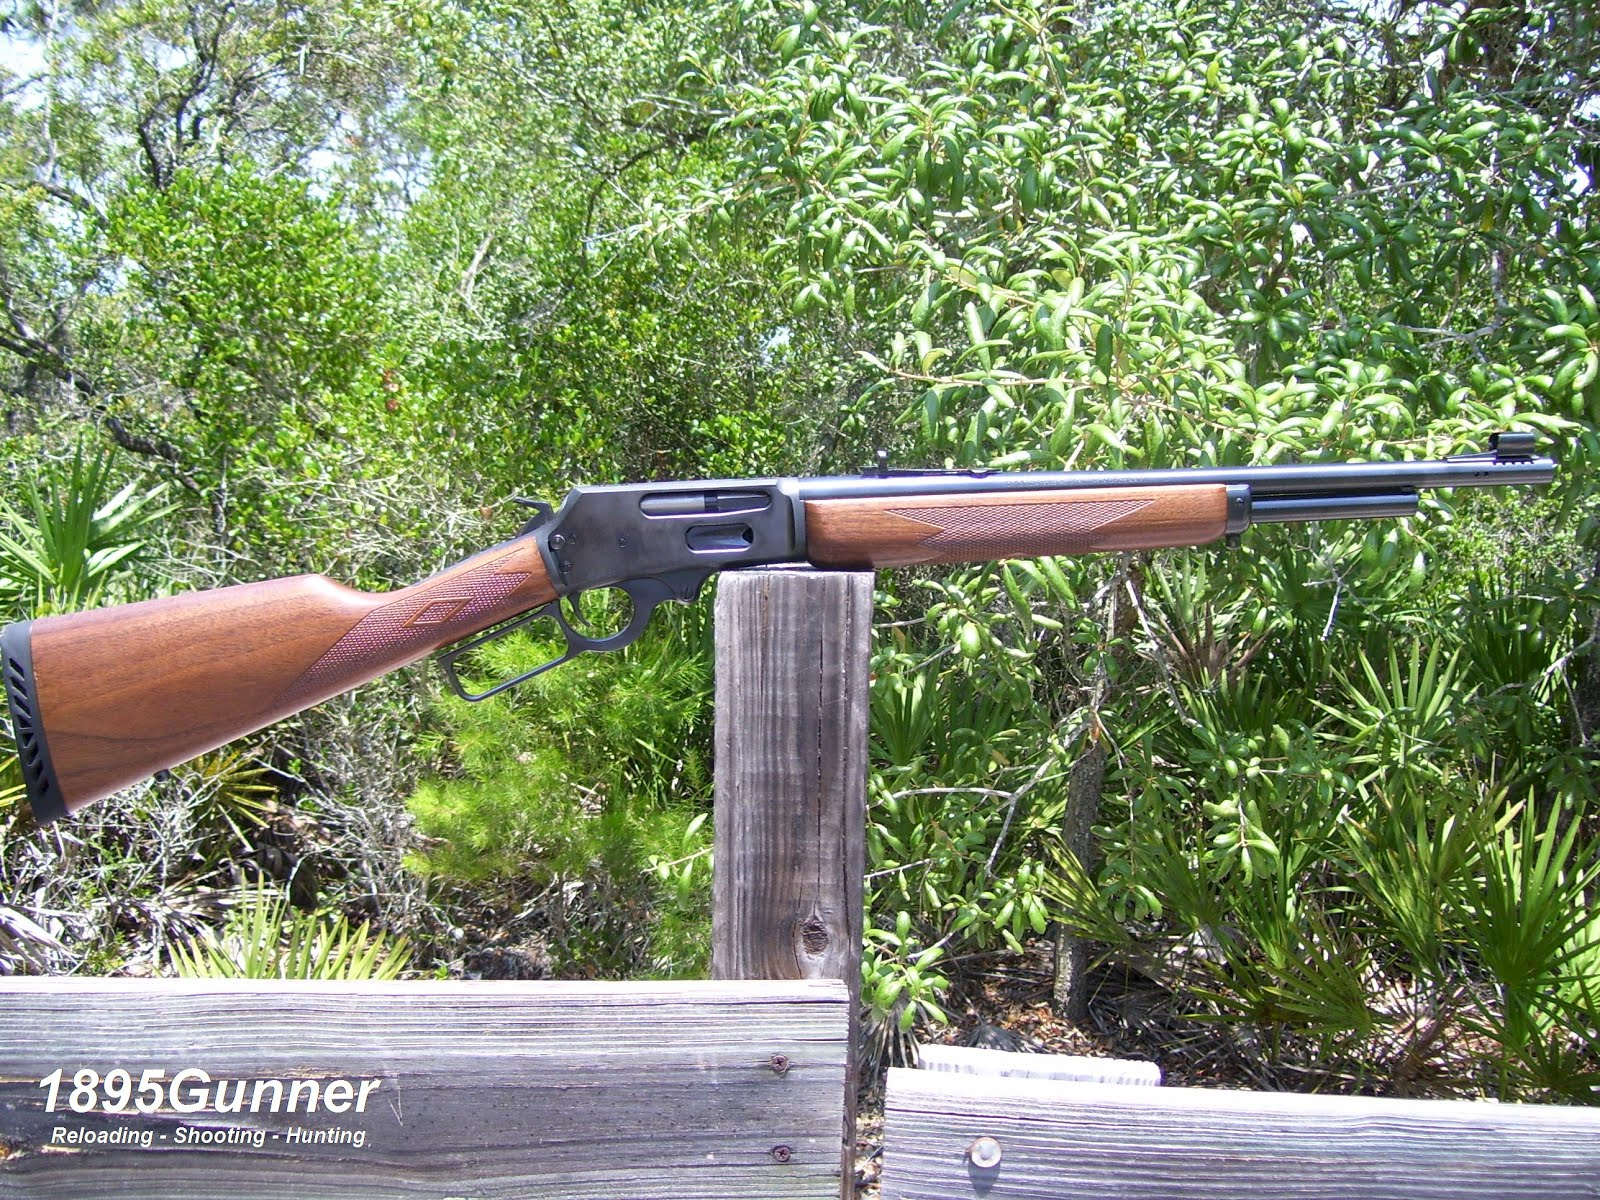 336D - 35 Remington